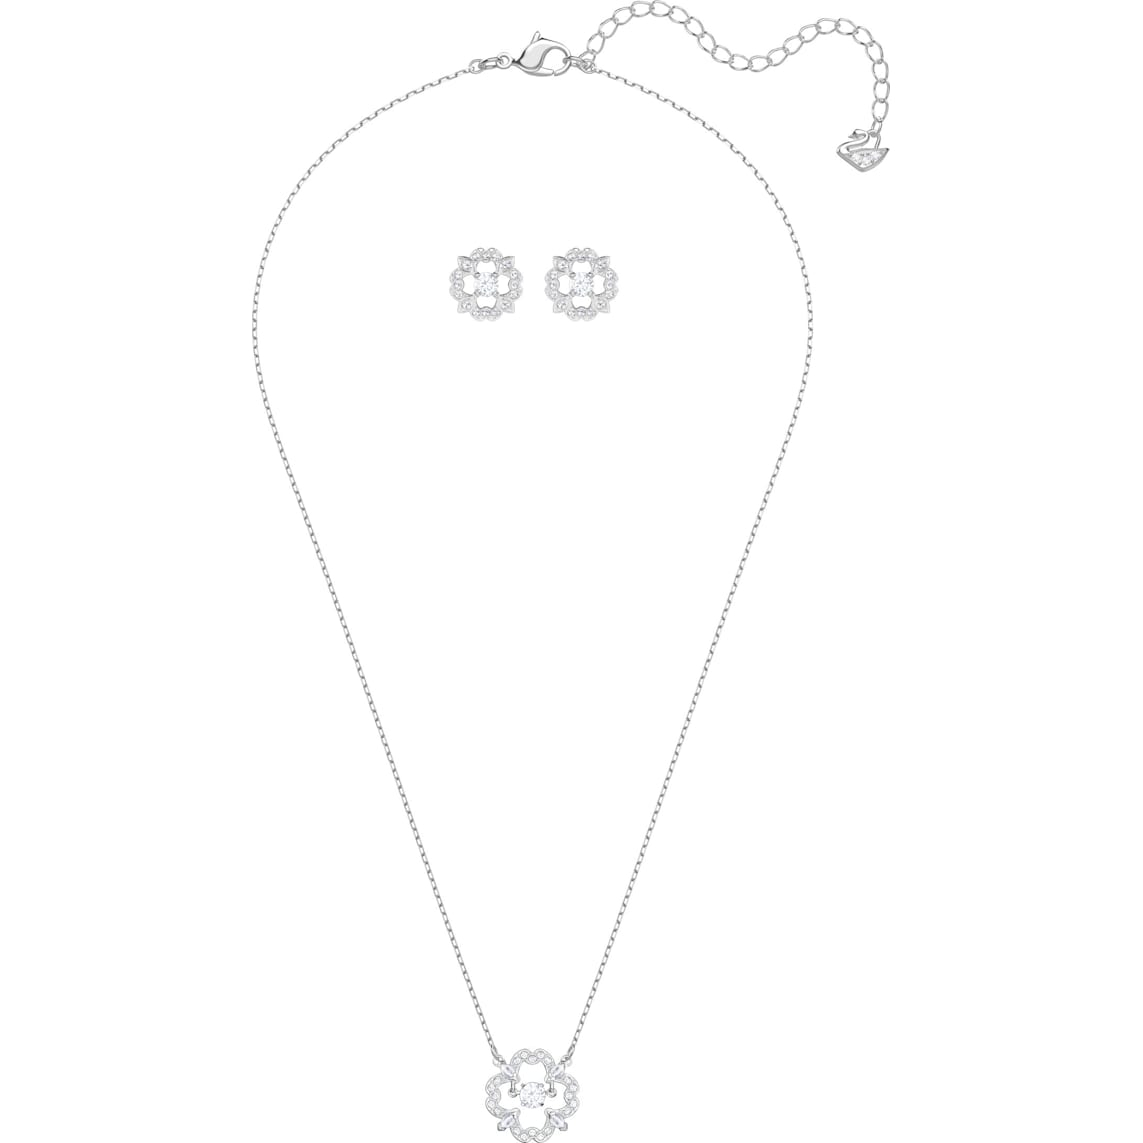 Sparkling Dance Flower Set, White, Rhodium Plated Within Best And Newest Sparkling Daisy Flower Locket Element Necklaces (View 23 of 25)